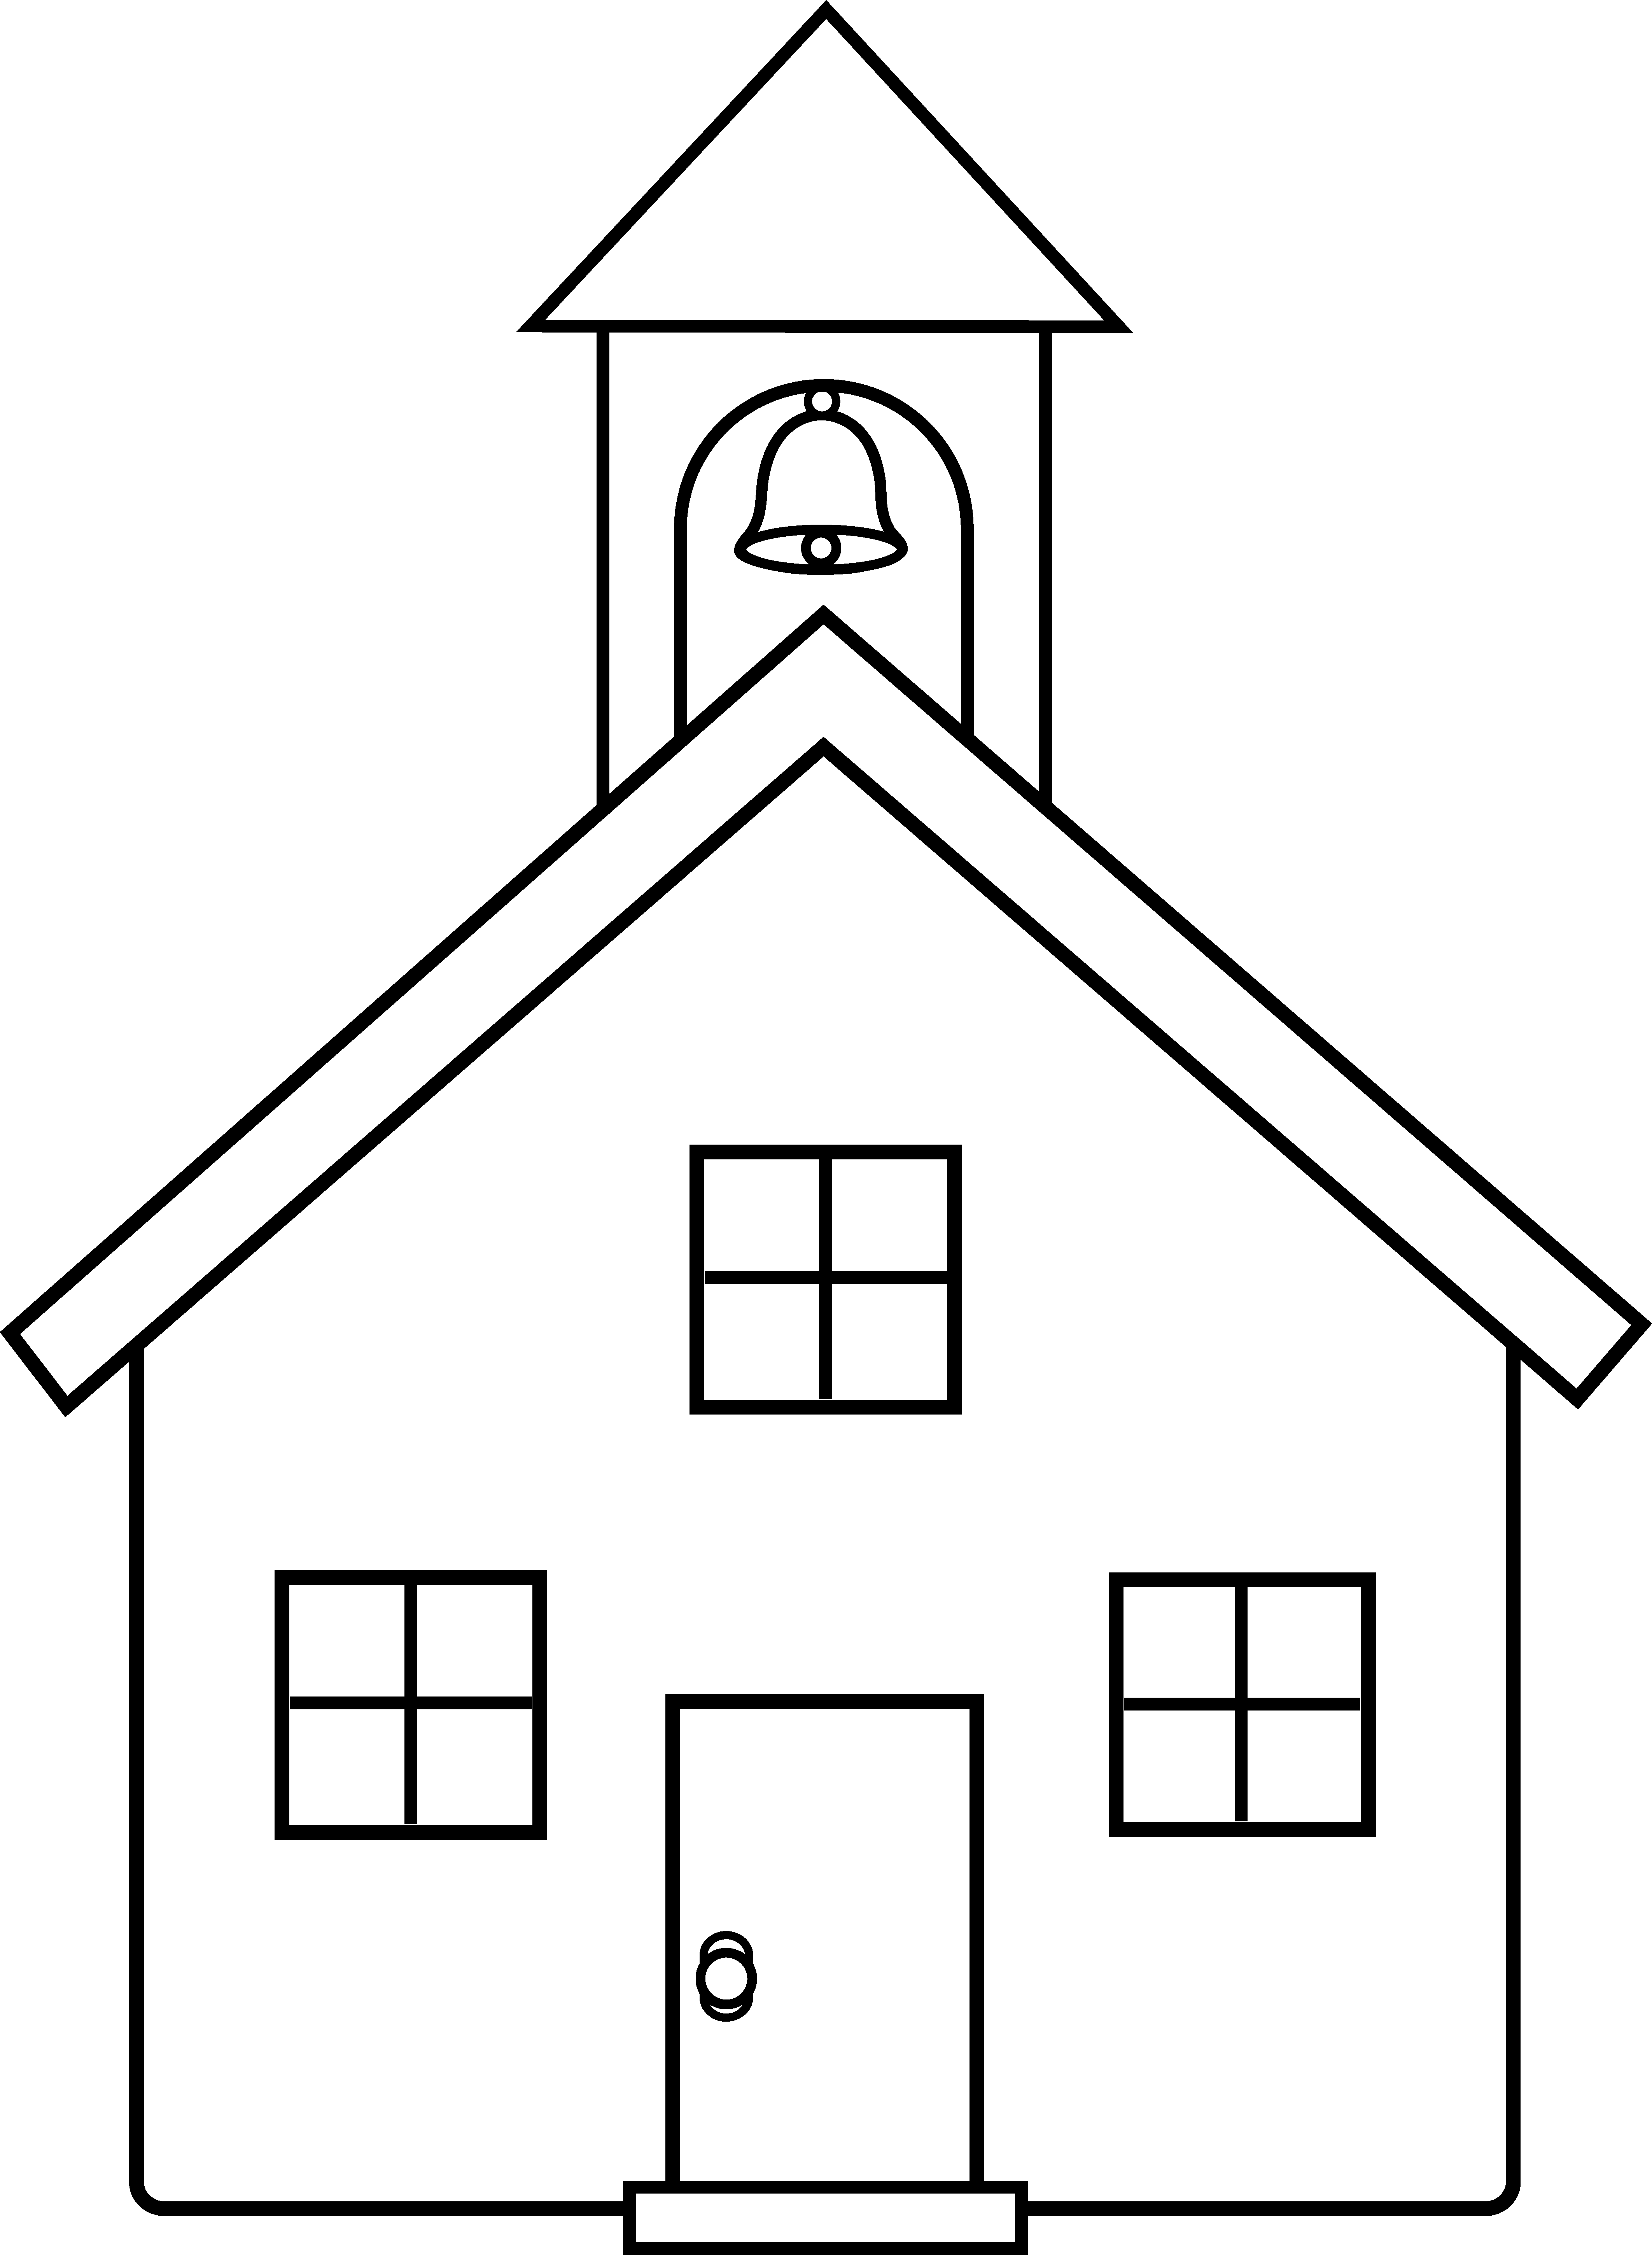 Vector and 3 House Outline Clipart 9407 Favorite ClipartFan.com.